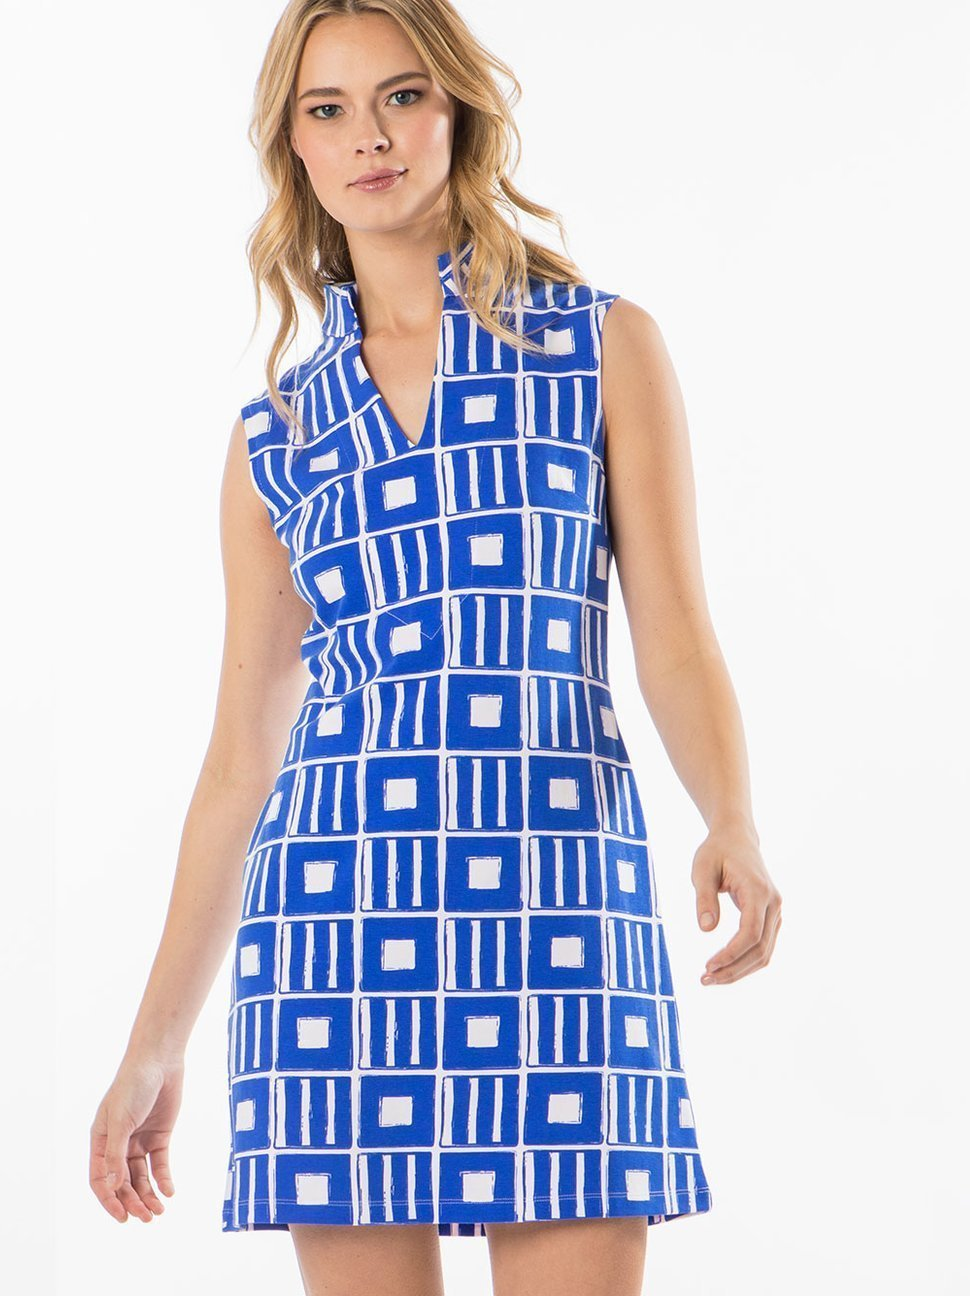 Mahi Gold Sleeveless MAHI Tunic Dress - Penelope - Sailor Blue